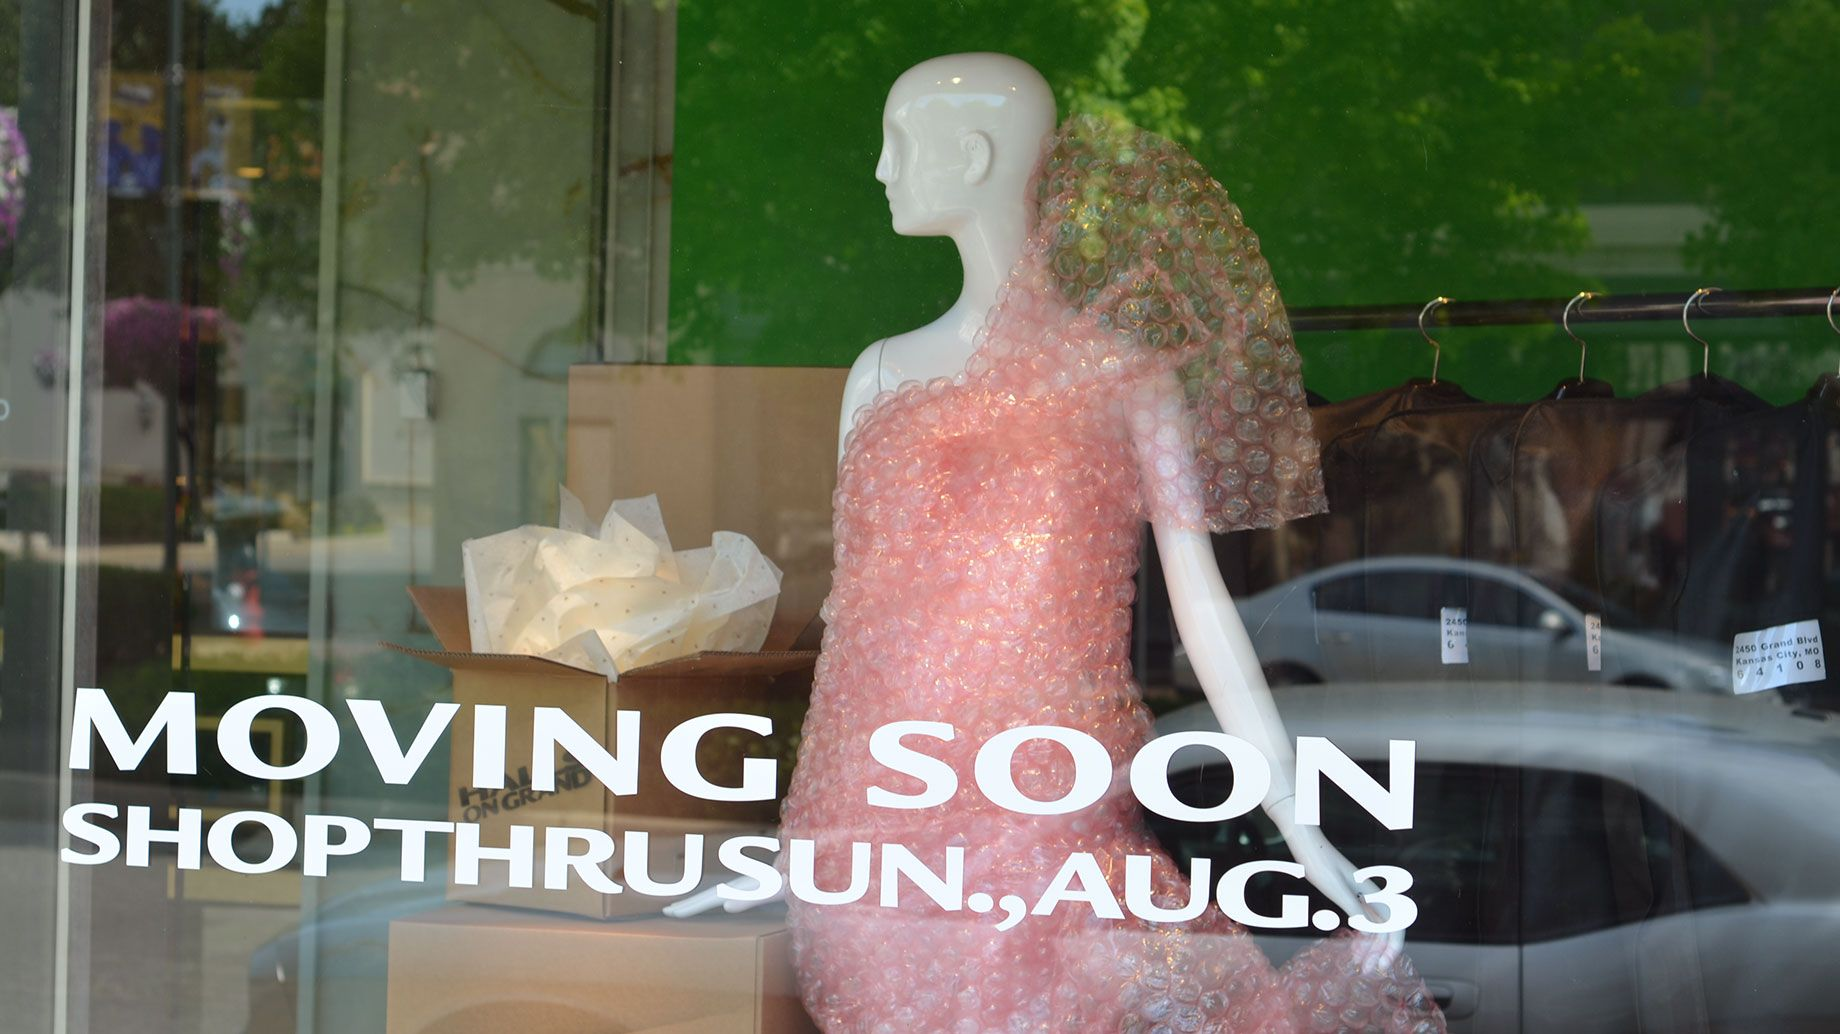 Blog post: Go Behind the Scenes of the Final Halls Plaza Windows with Taylor Gozia - Halls